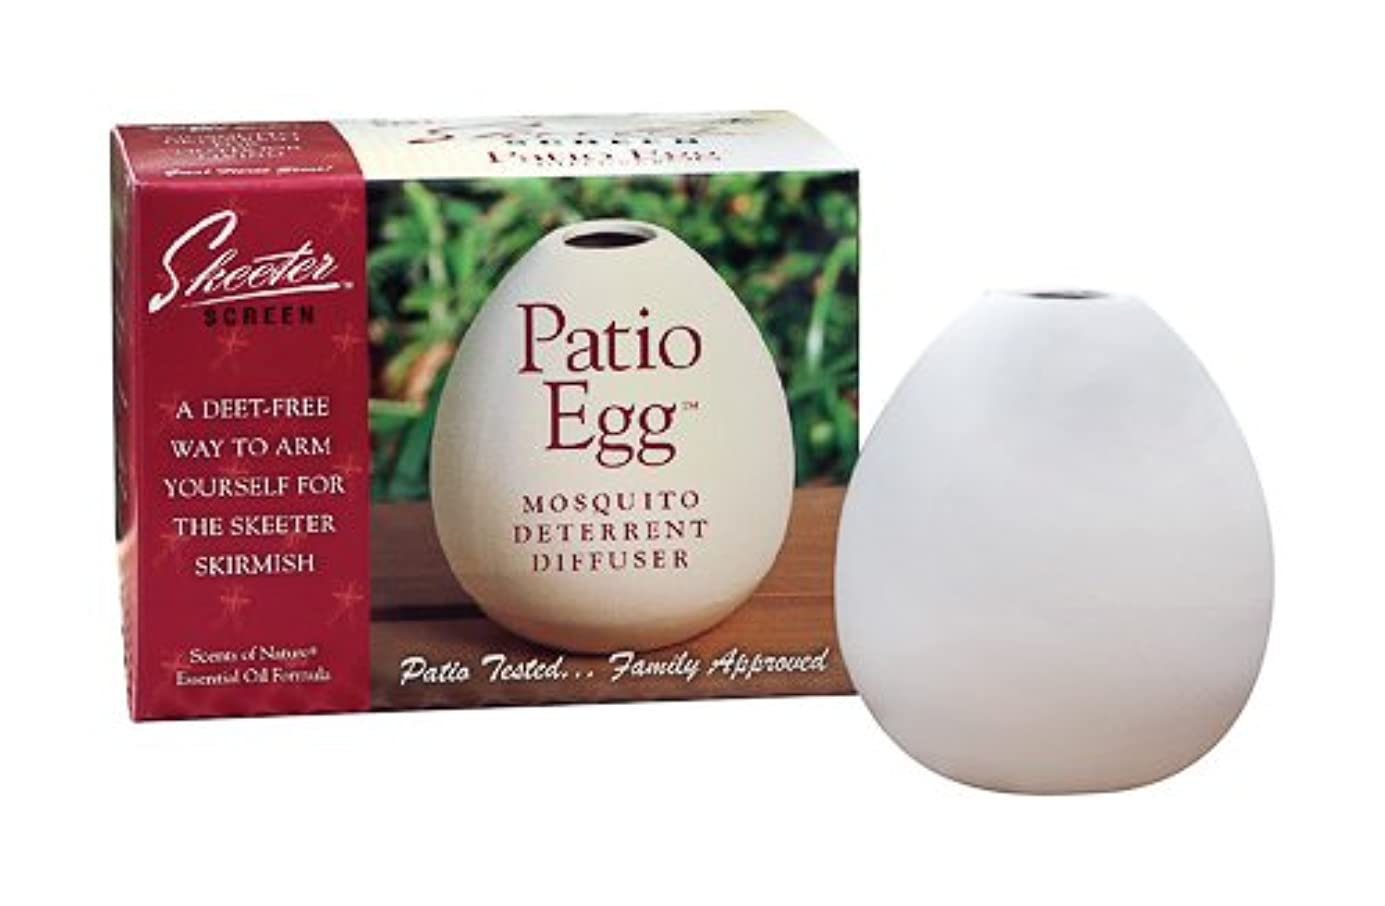 教育学高速道路組立4OZ Patio Egg Diffuser (Pack of 6) by Scent Shop [並行輸入品]